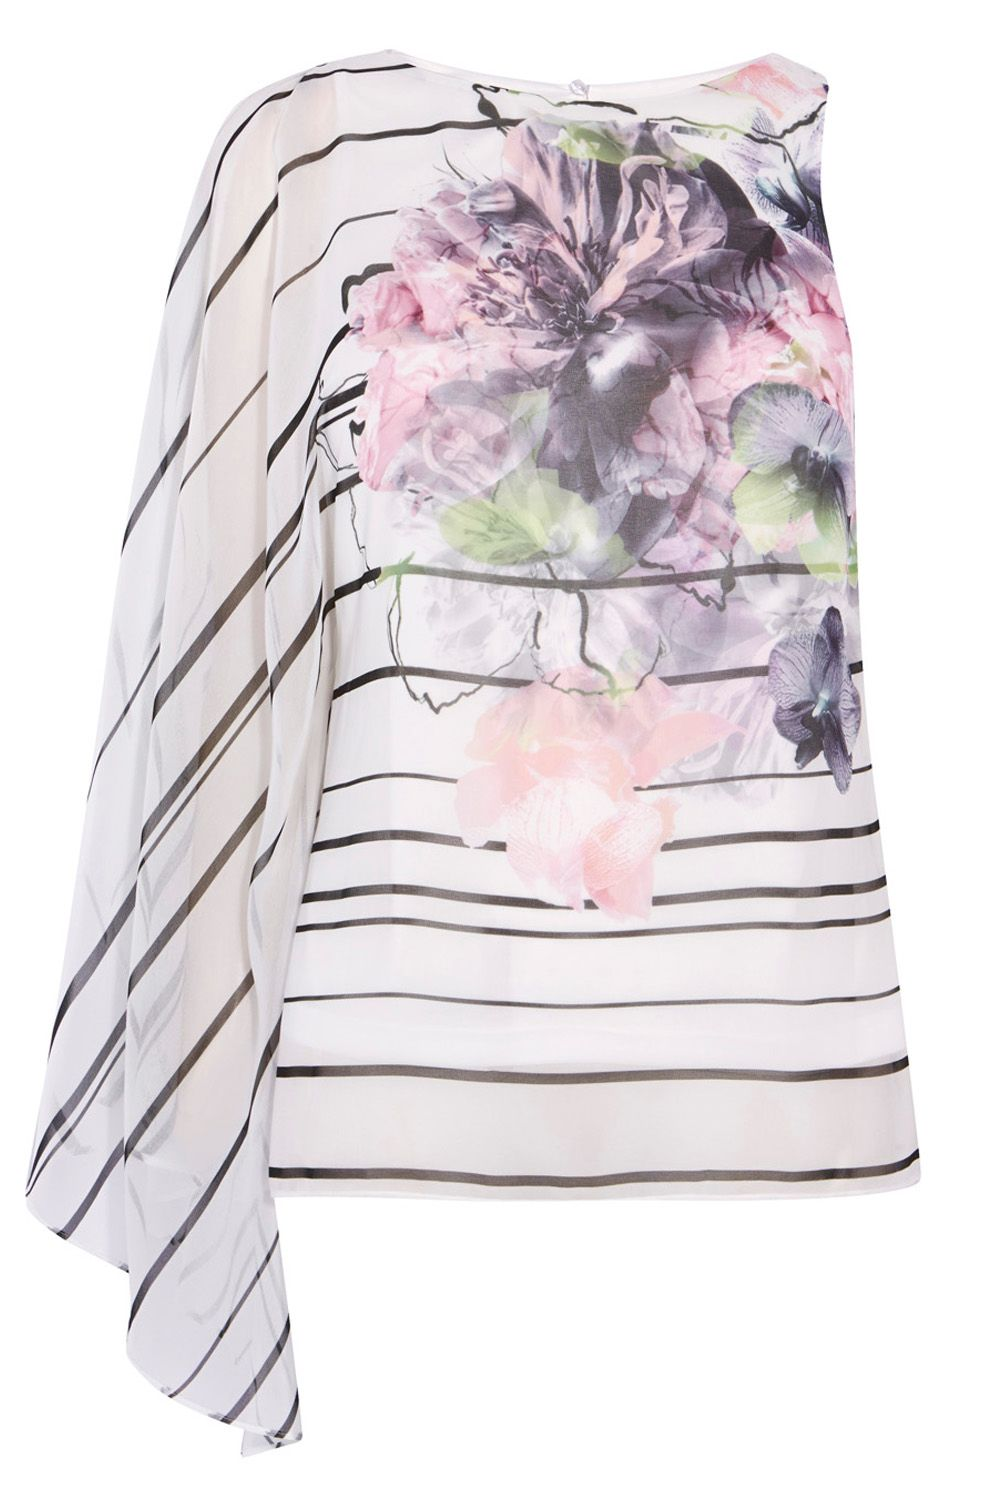 Coast Roma Print Top, Multi-Coloured